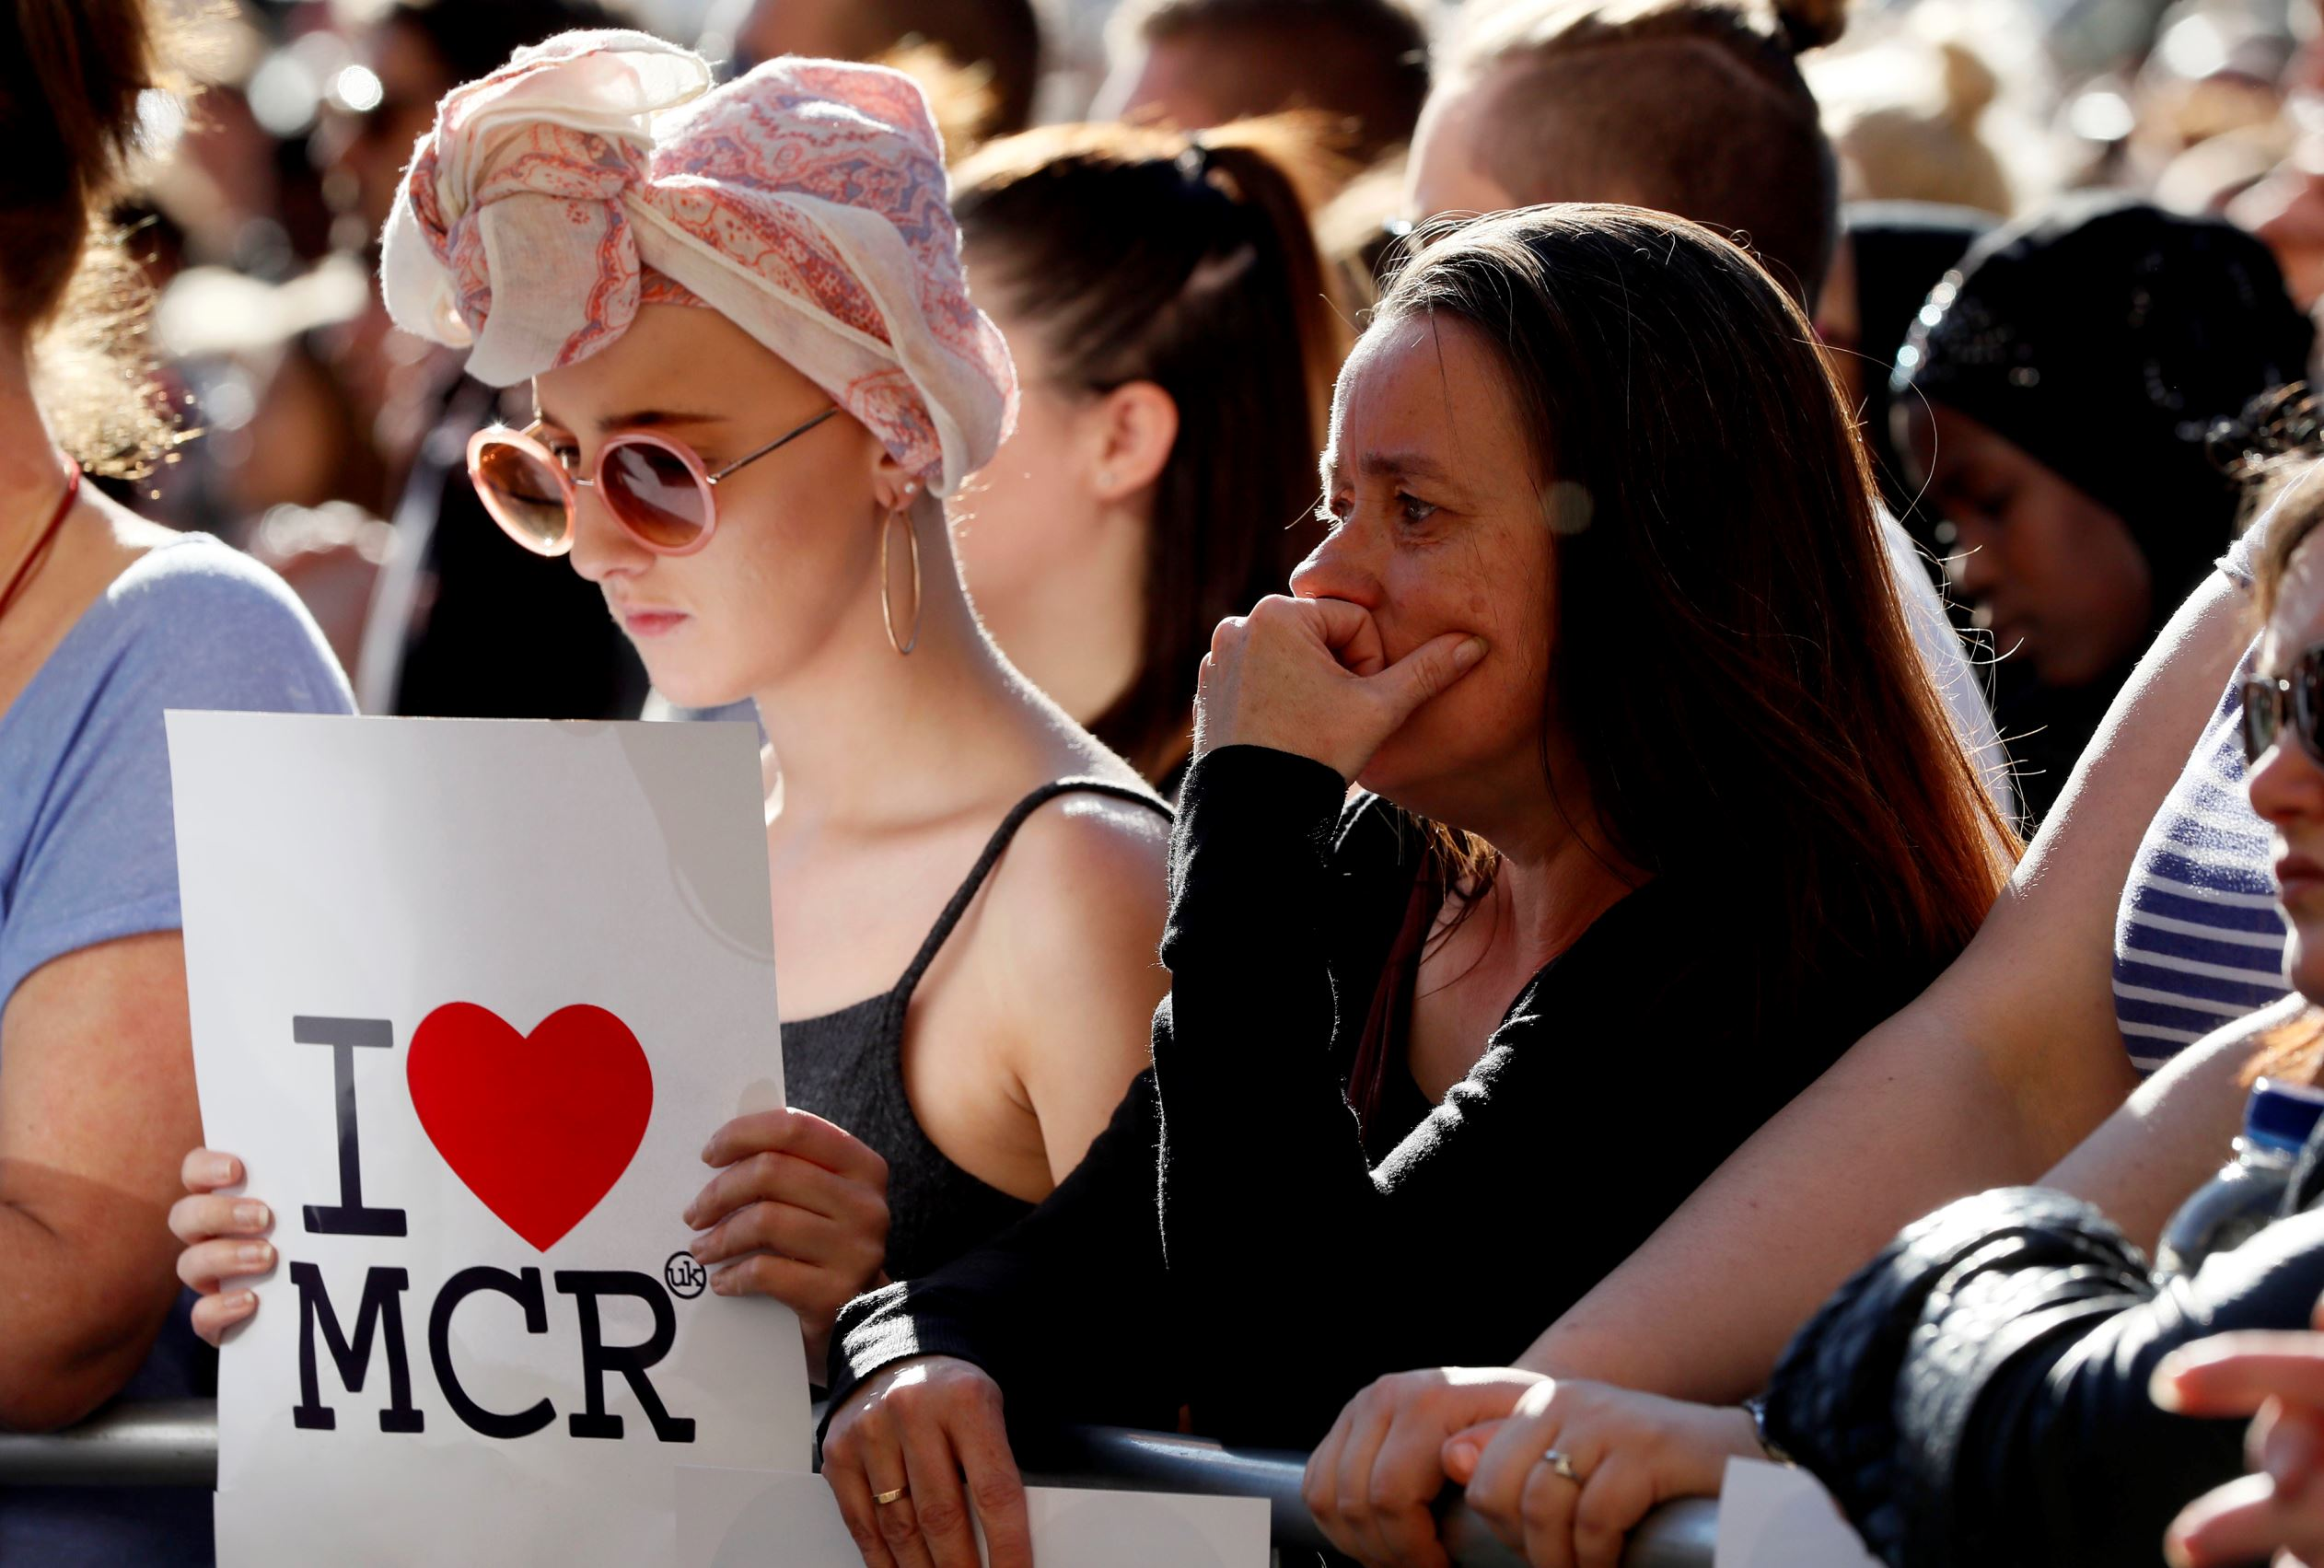 Slide 4 of 48: People attend a vigil in Albert Square, Manchester, England, Tuesday May 23, 2017, the day after the suicide attack at an Ariana Grande concert that left 22 people dead as it ended on Monday night.